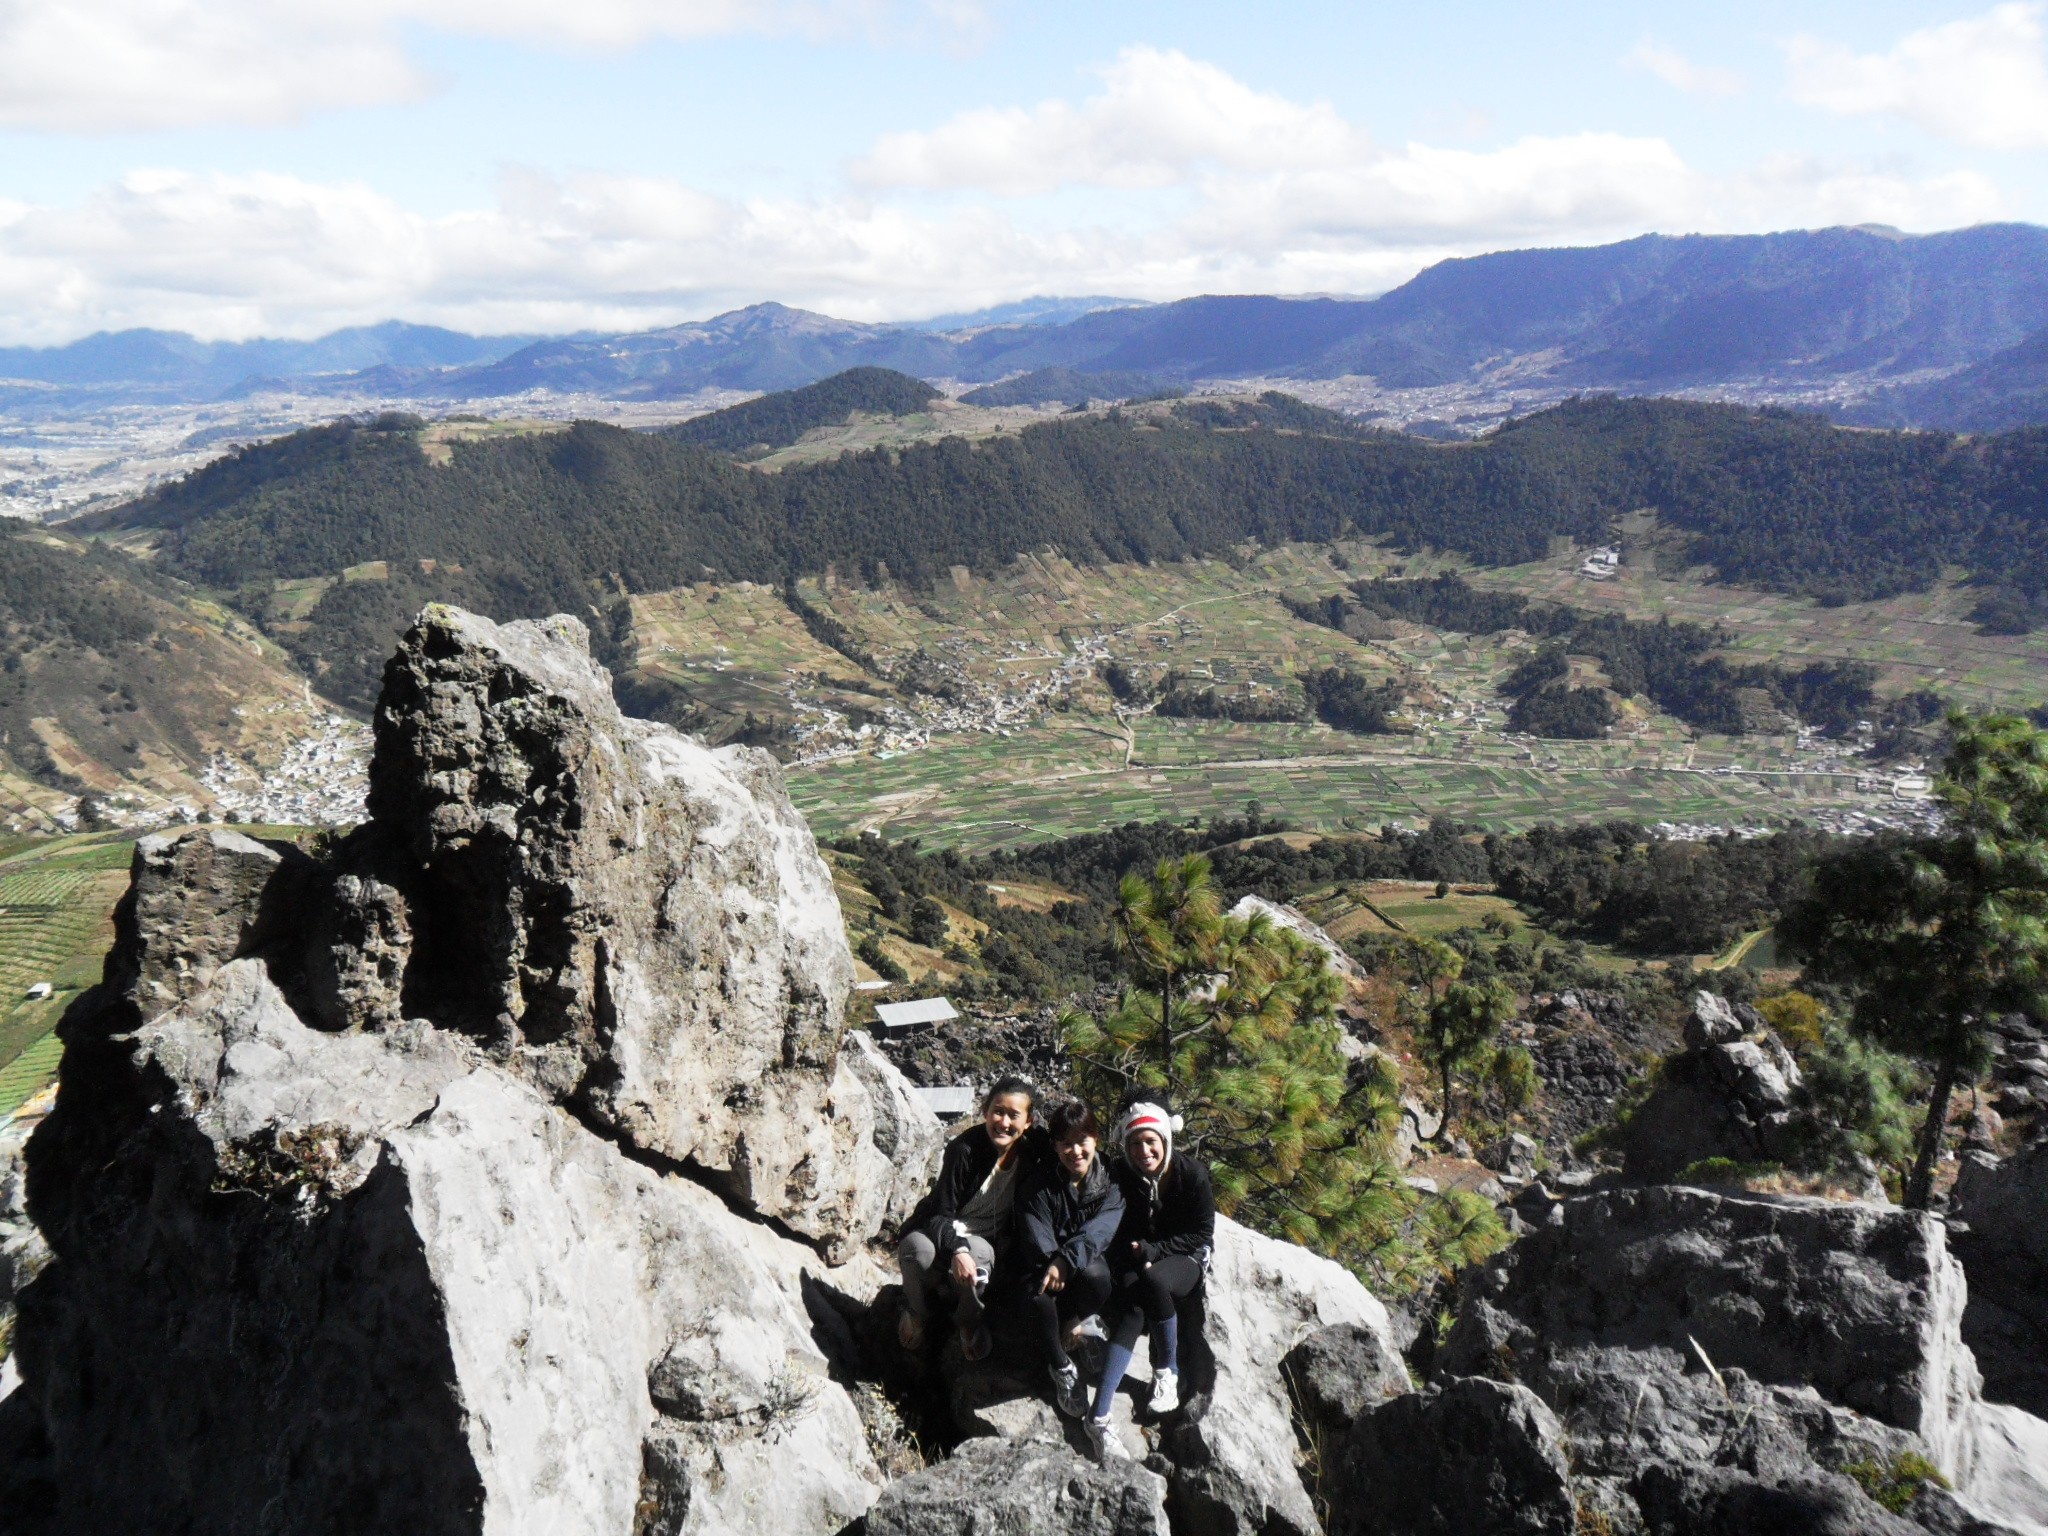 Trekking in Quetzaltenango with a couple of friends